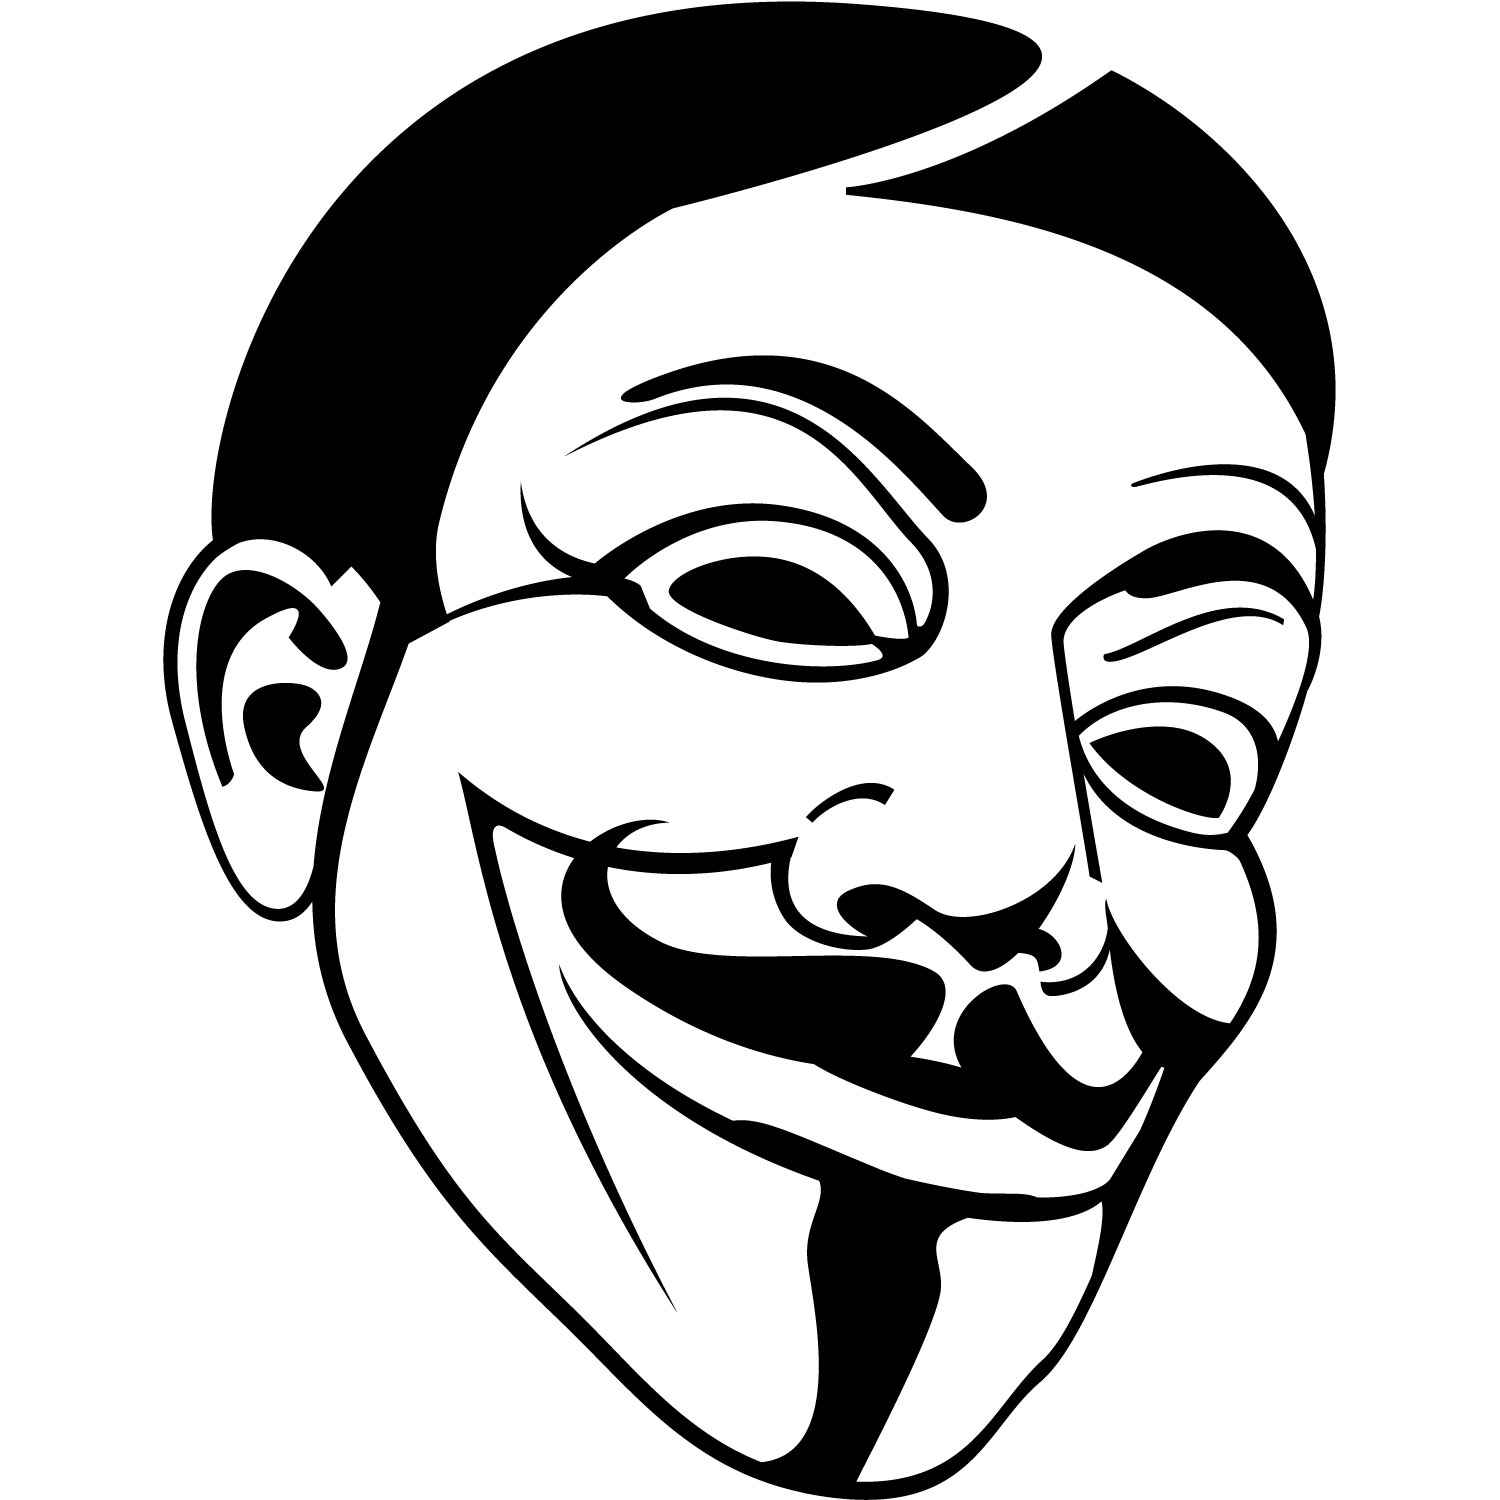 File Guy Fawkes Mask Image likewise Nascar Logos Clip Art furthermore Free Vector Collections together with Nascar Clip Art Black And White moreover Illustrator Cartoon Face. on detailtest